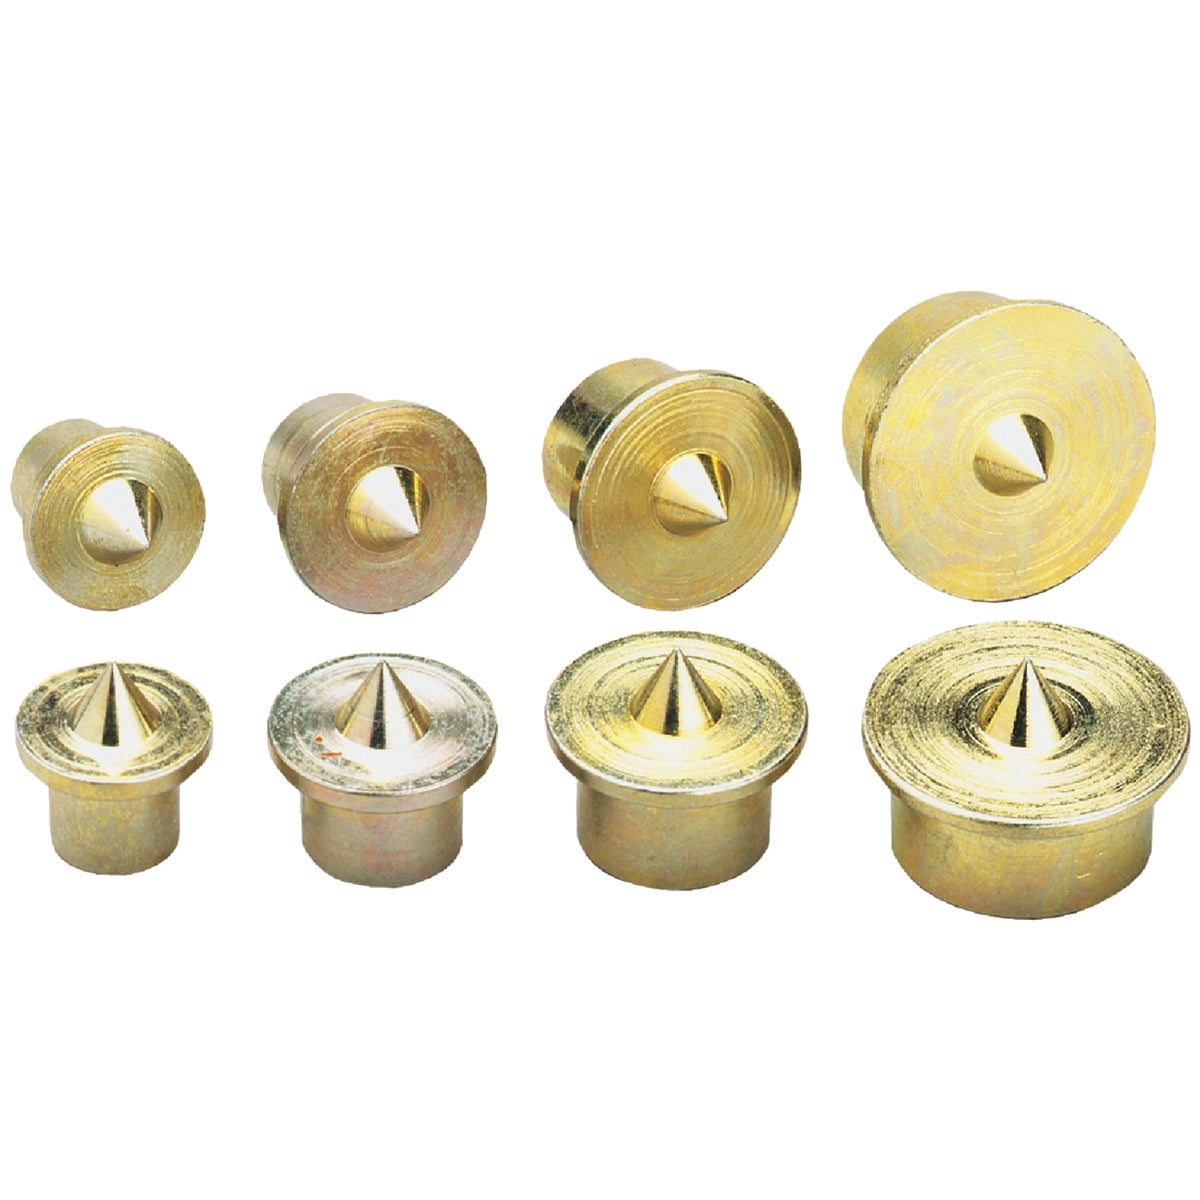 "1/2"" DOWEL CENTER SET - 25860 by Bwt Inc"